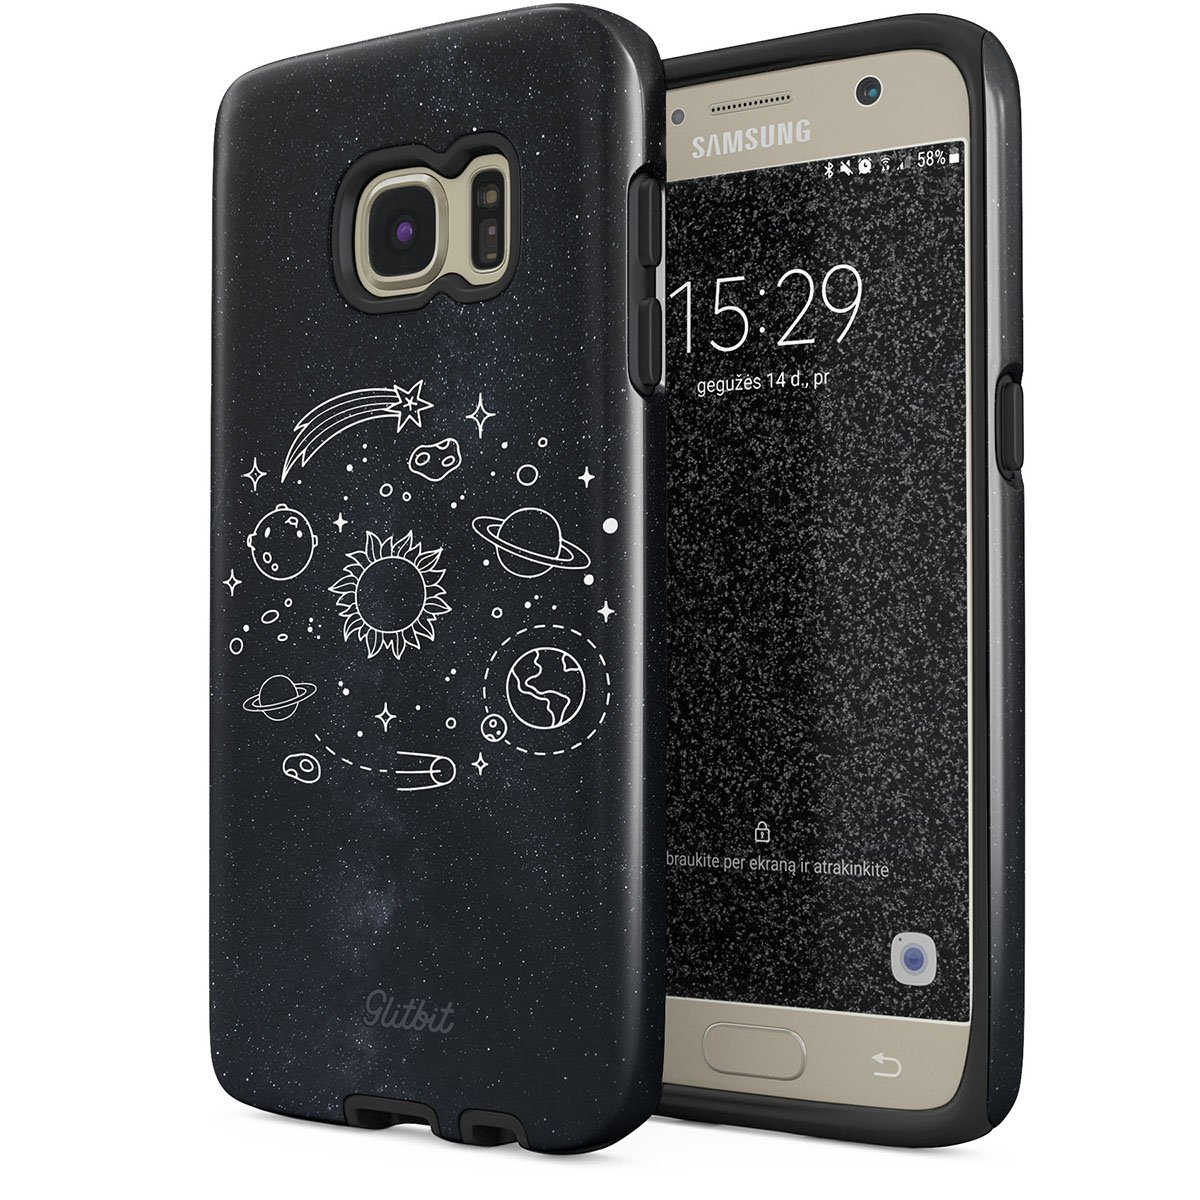 Glitbit Samsung Galaxy S6 Case Cute Solar System Galaxy Stars Planet Sun Earth Moon Universe Cosmic Cosmos Space Tumblr Heavy Duty Shockproof Dual Layer Hard Shell + Silicone Protective Cover